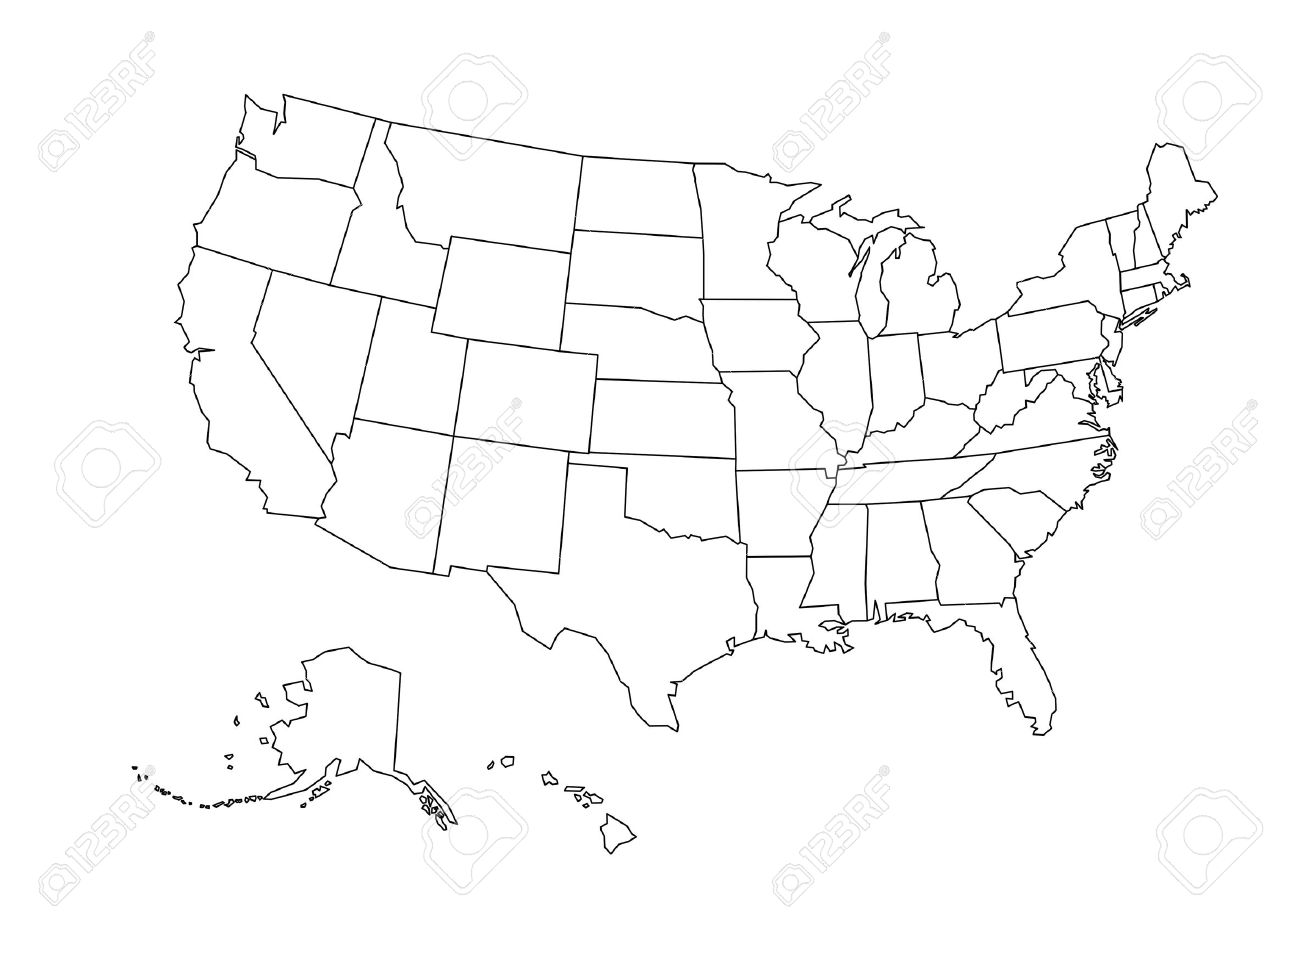 Blank outline map of United States of America. Simplified vector..